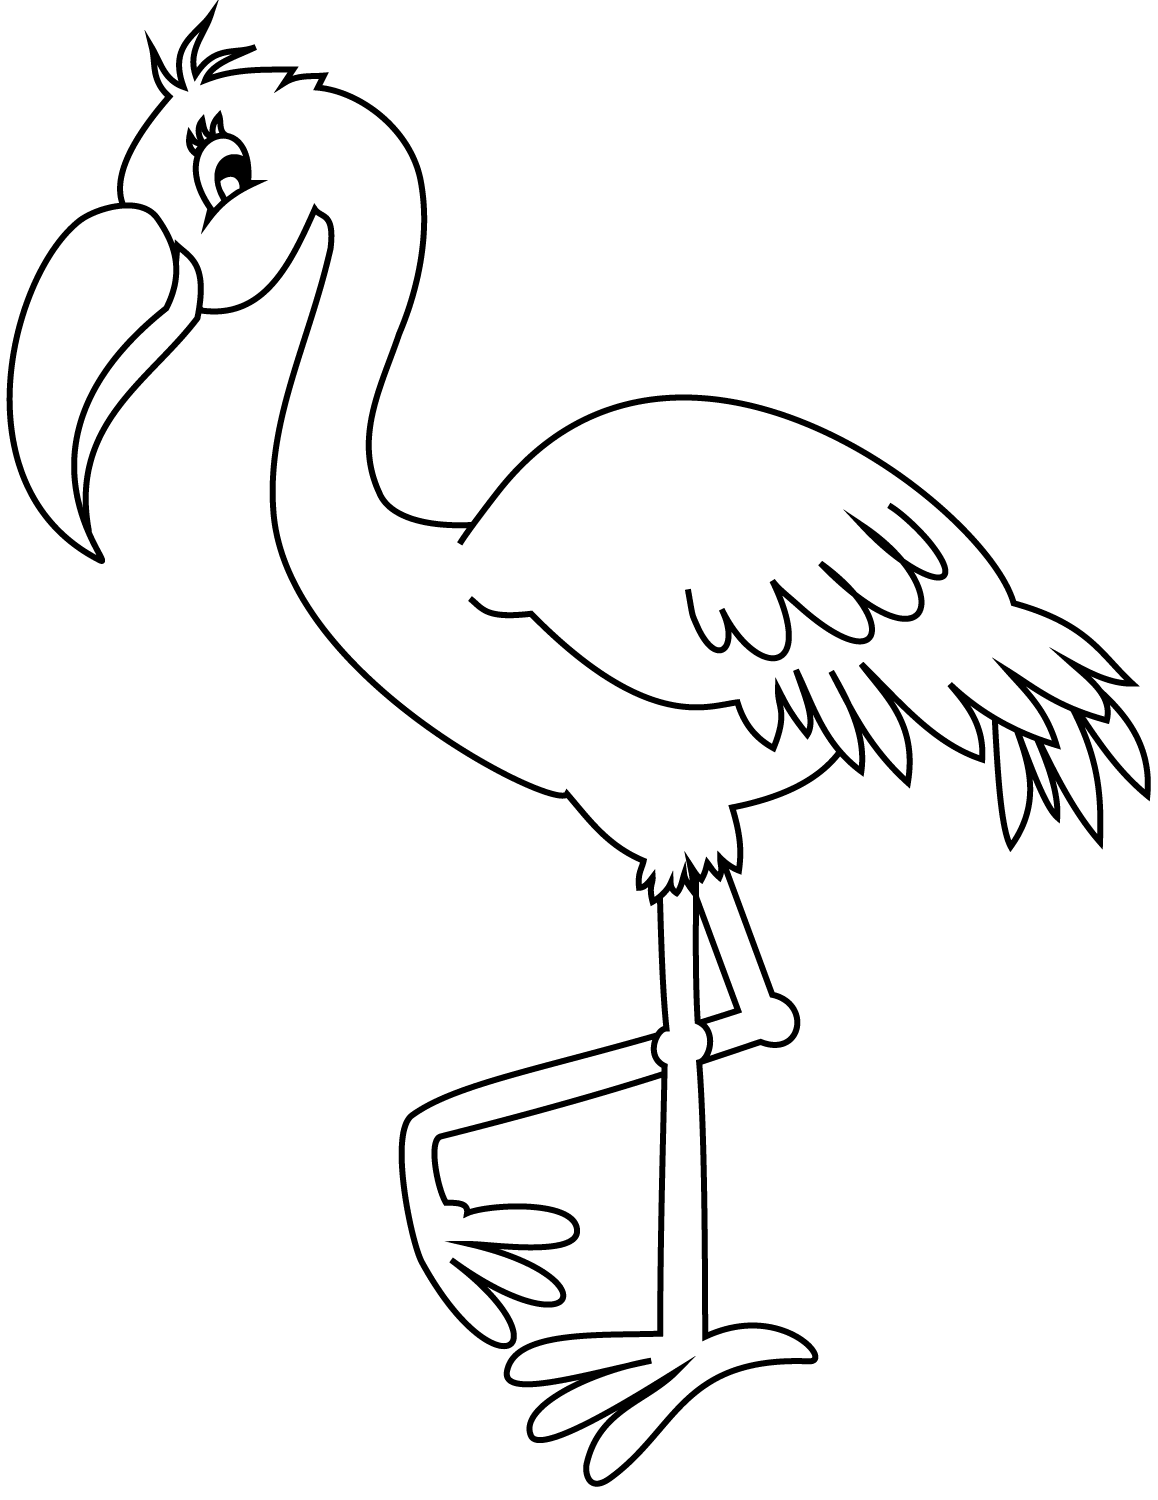 flamingo coloring pictures baby flamingo pages coloring pages pictures coloring flamingo